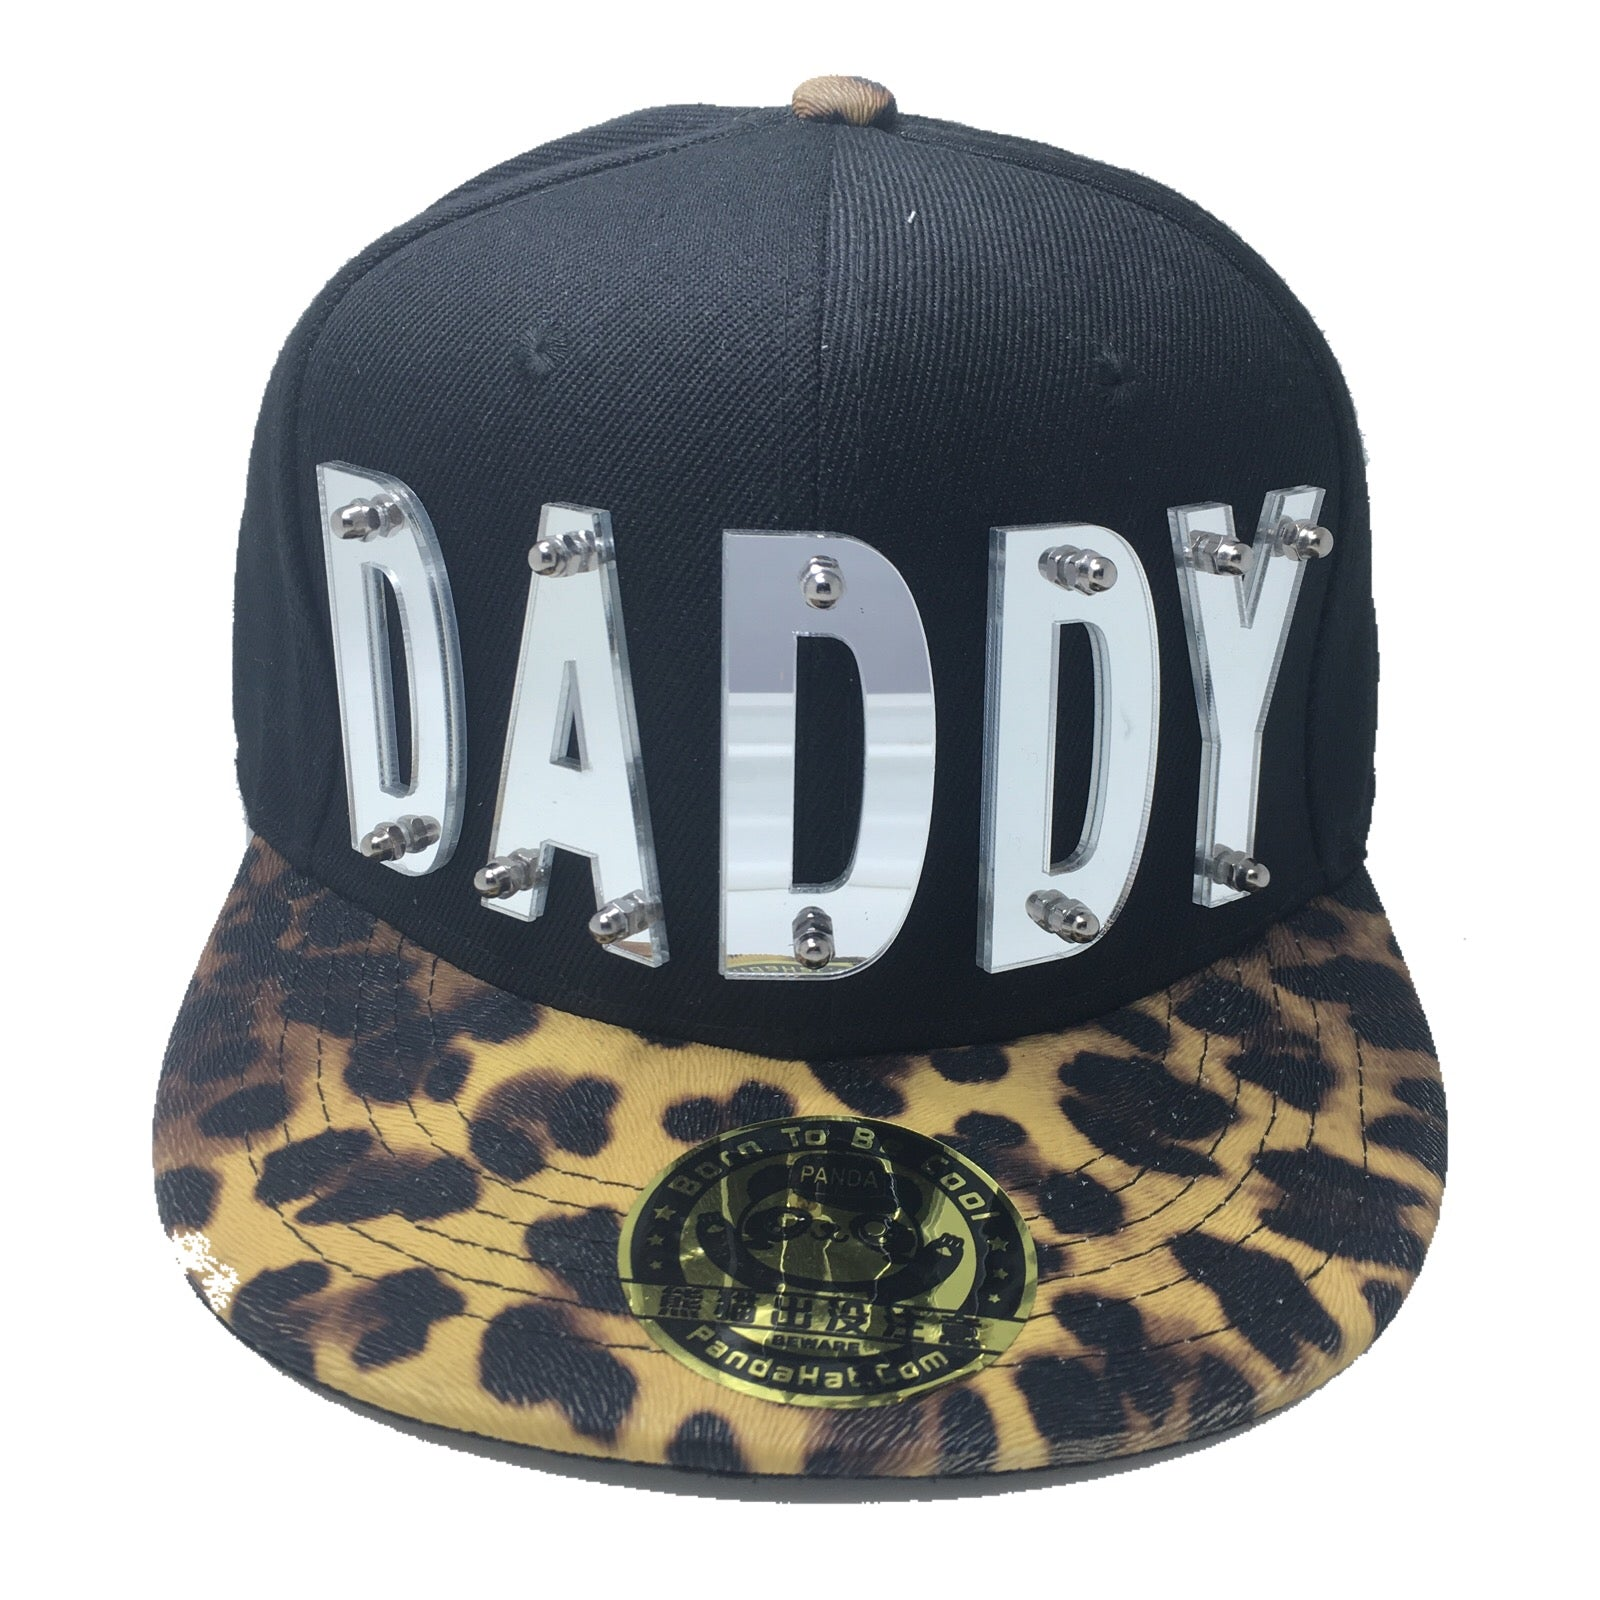 6d259ace40c DADDY HAT IN BLACK WITH LEOPARD BRIM - Pandahat